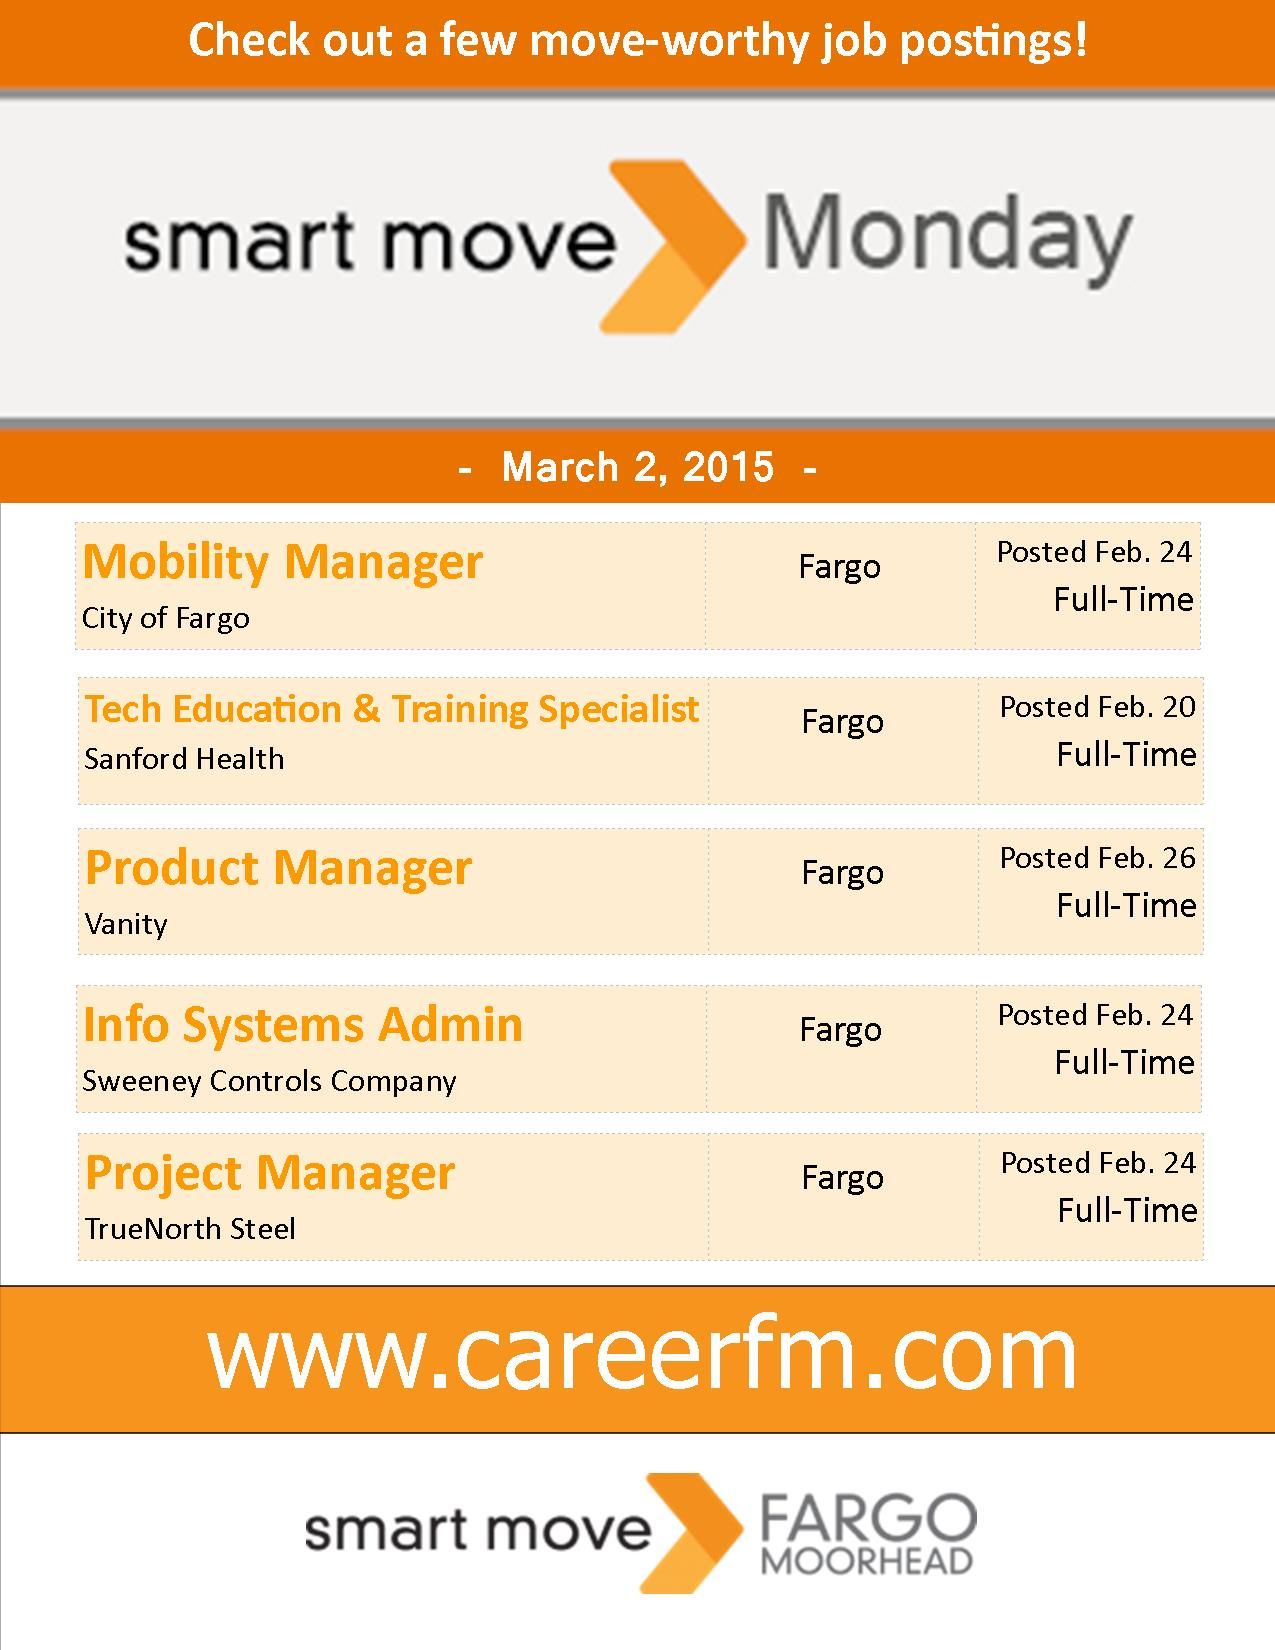 Its smartmovemonday check out these listings and see